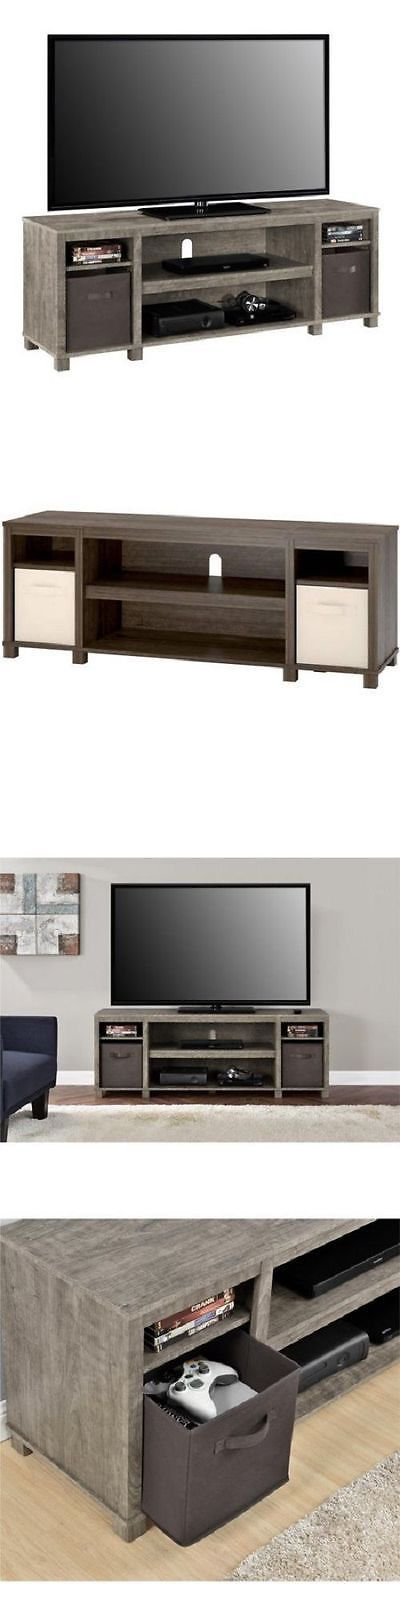 Entertainment Units TV Stands: 65 Inch Tv Stand Entertainment Center Home Theater Media Storage Wood Console -> BUY IT NOW ONLY: $111.97 on eBay!